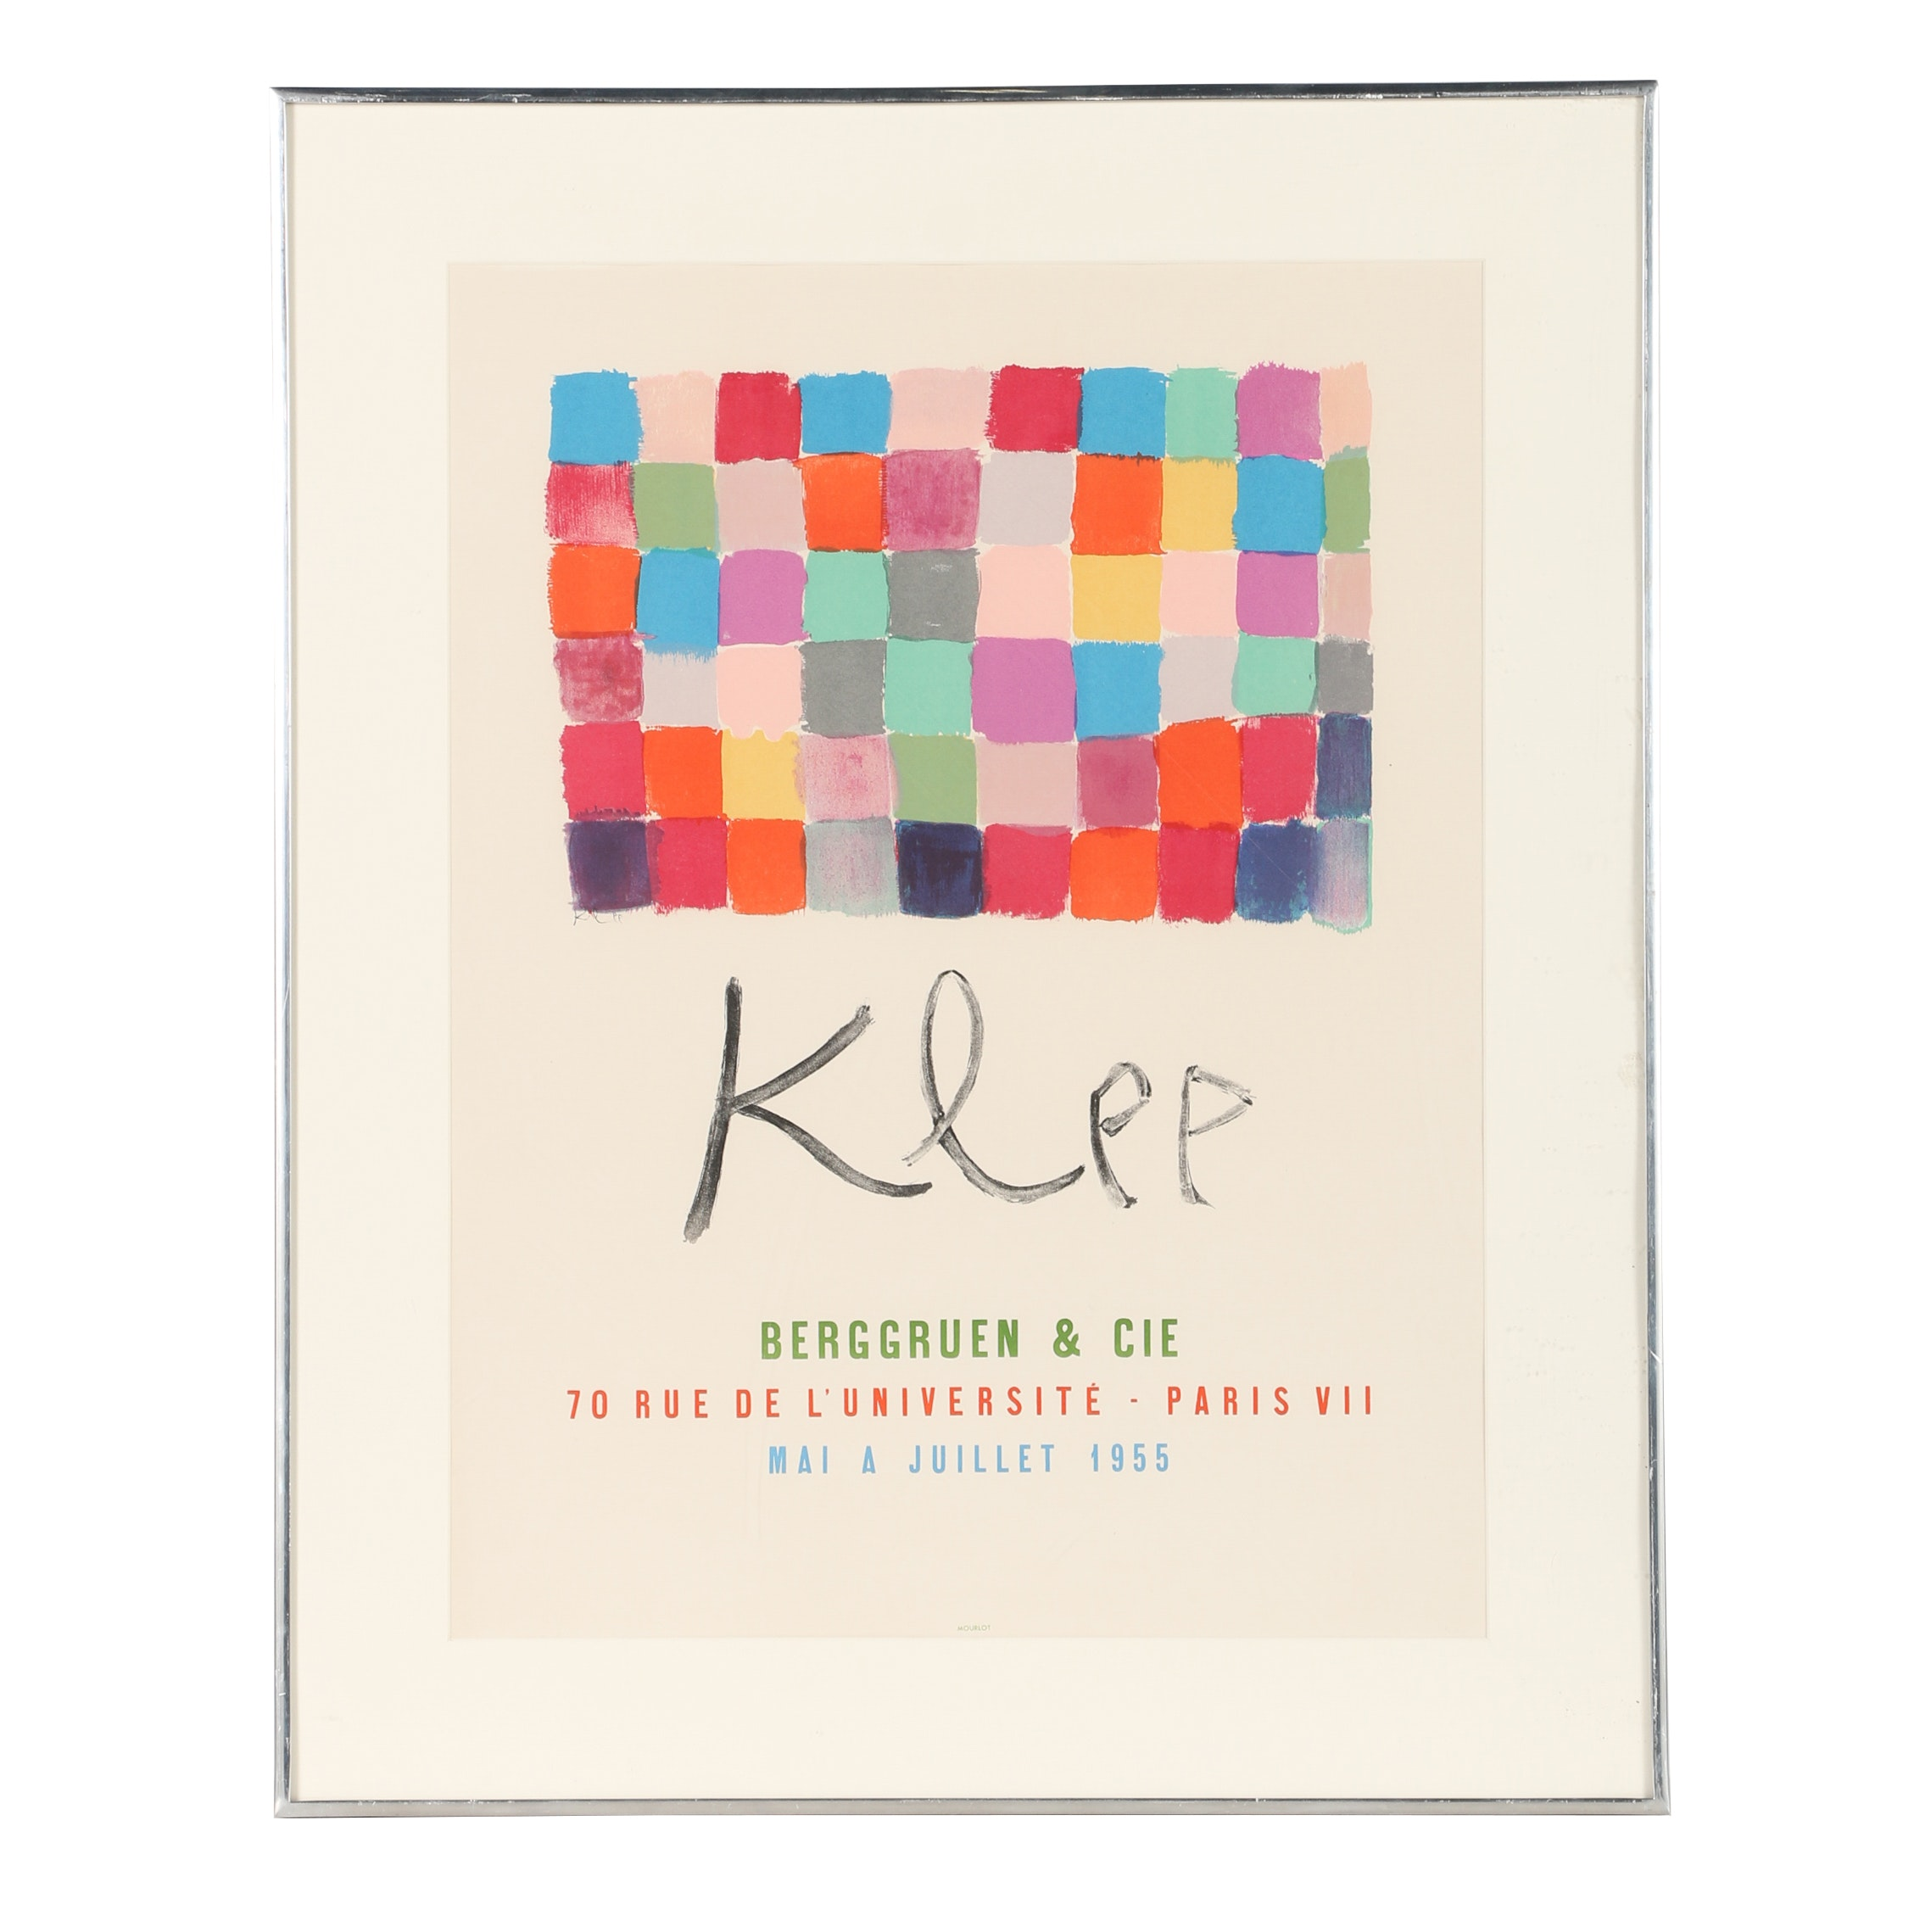 After Paul Klee Giclée Poster for The Klee Exhibition at Berggruen & Cie